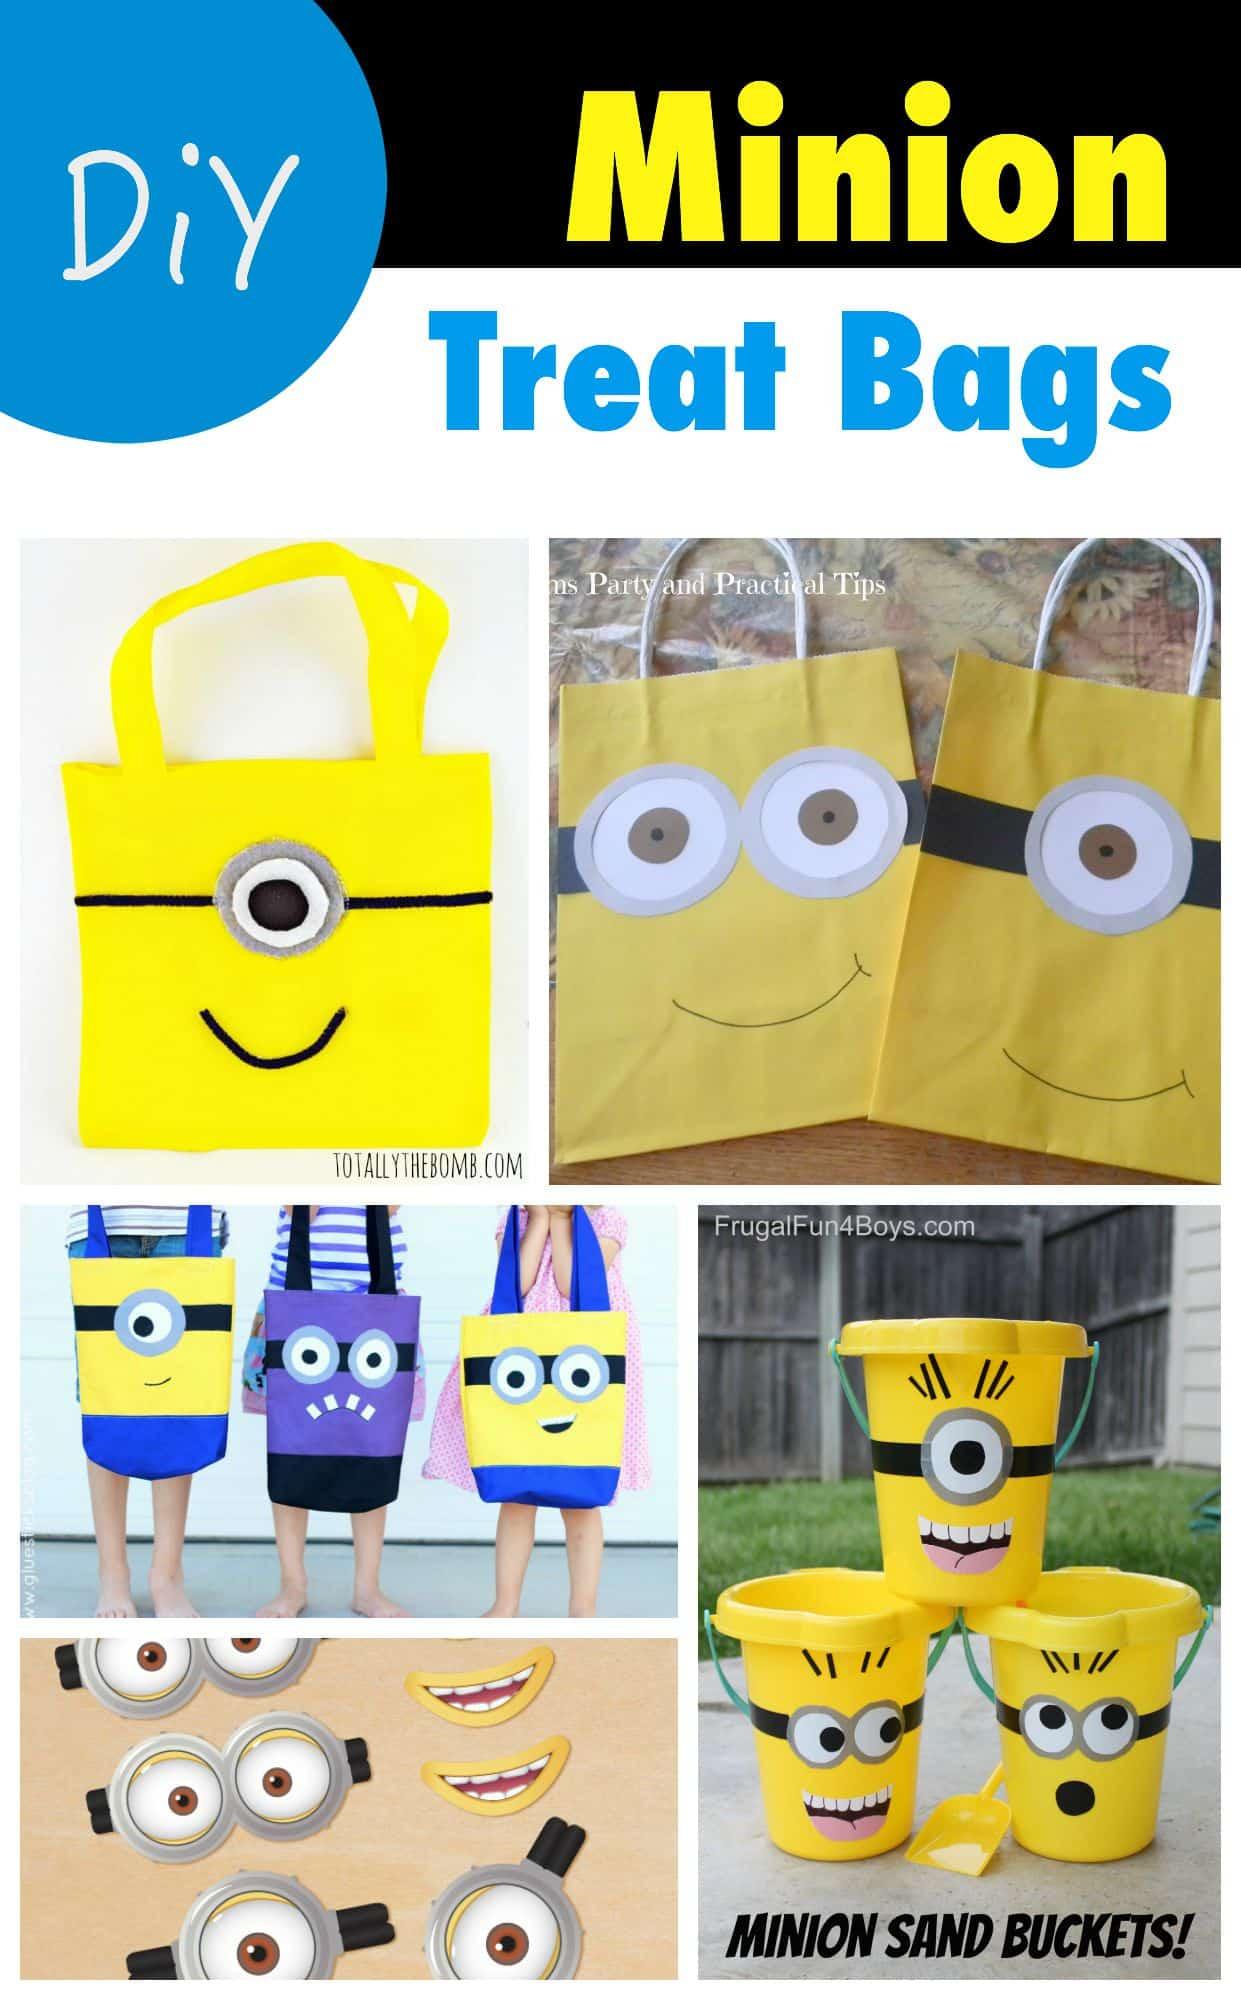 DiY Minion Treat Bags - for Halloween Trick or Treating! Full instructions and links to all tutorials included